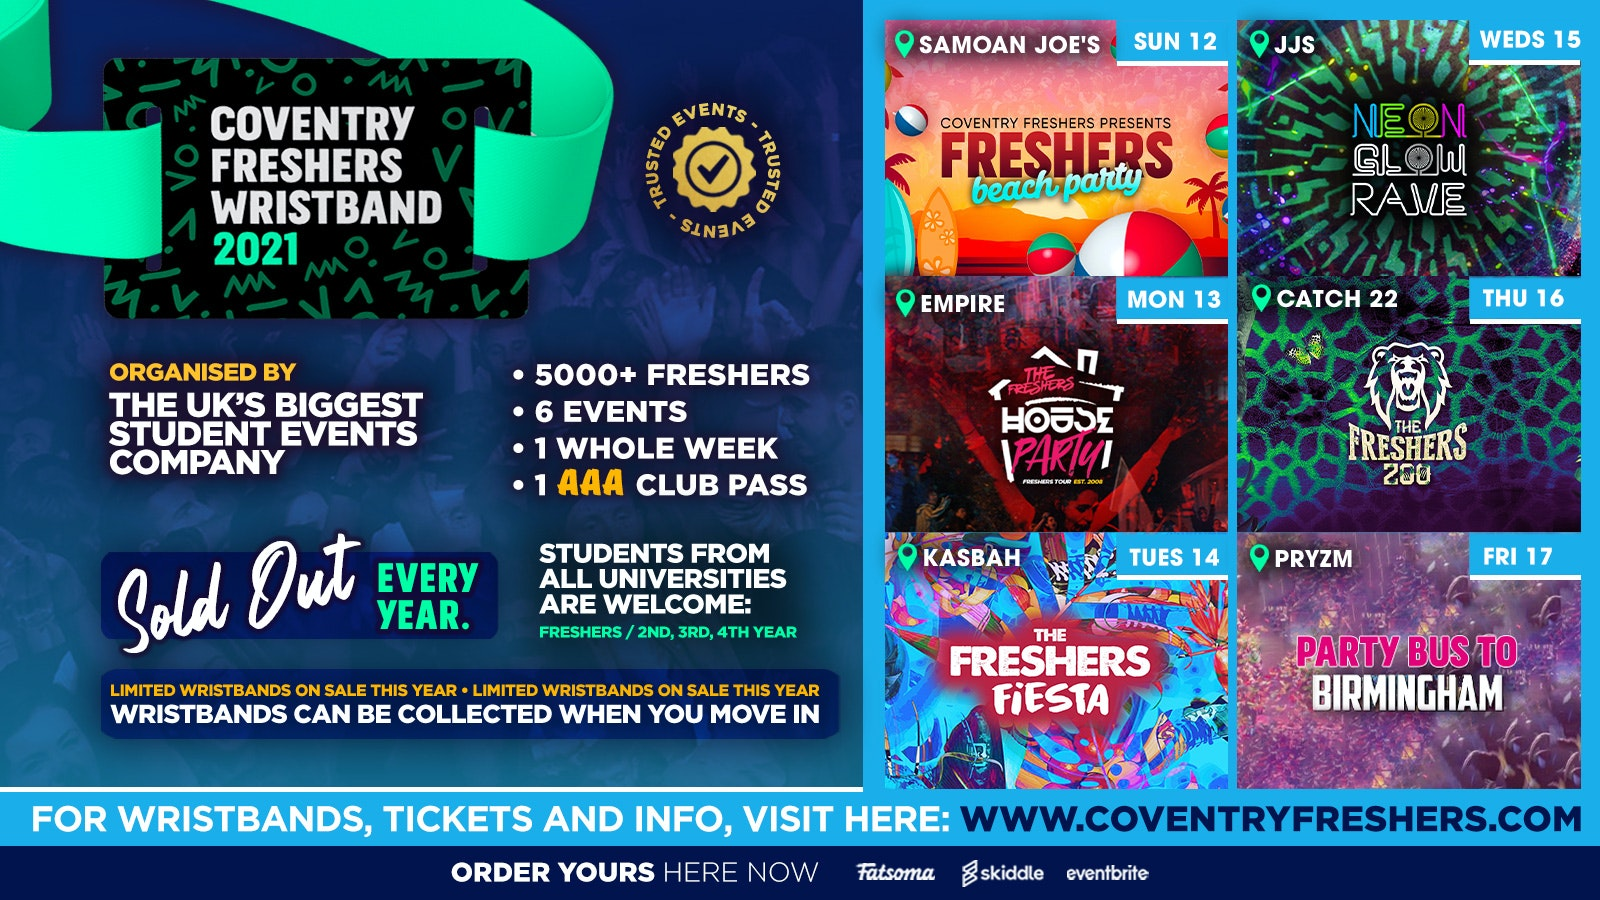 The Coventry Freshers Wristband // Coventry Freshers 2021 – Last FEW Wristbands!